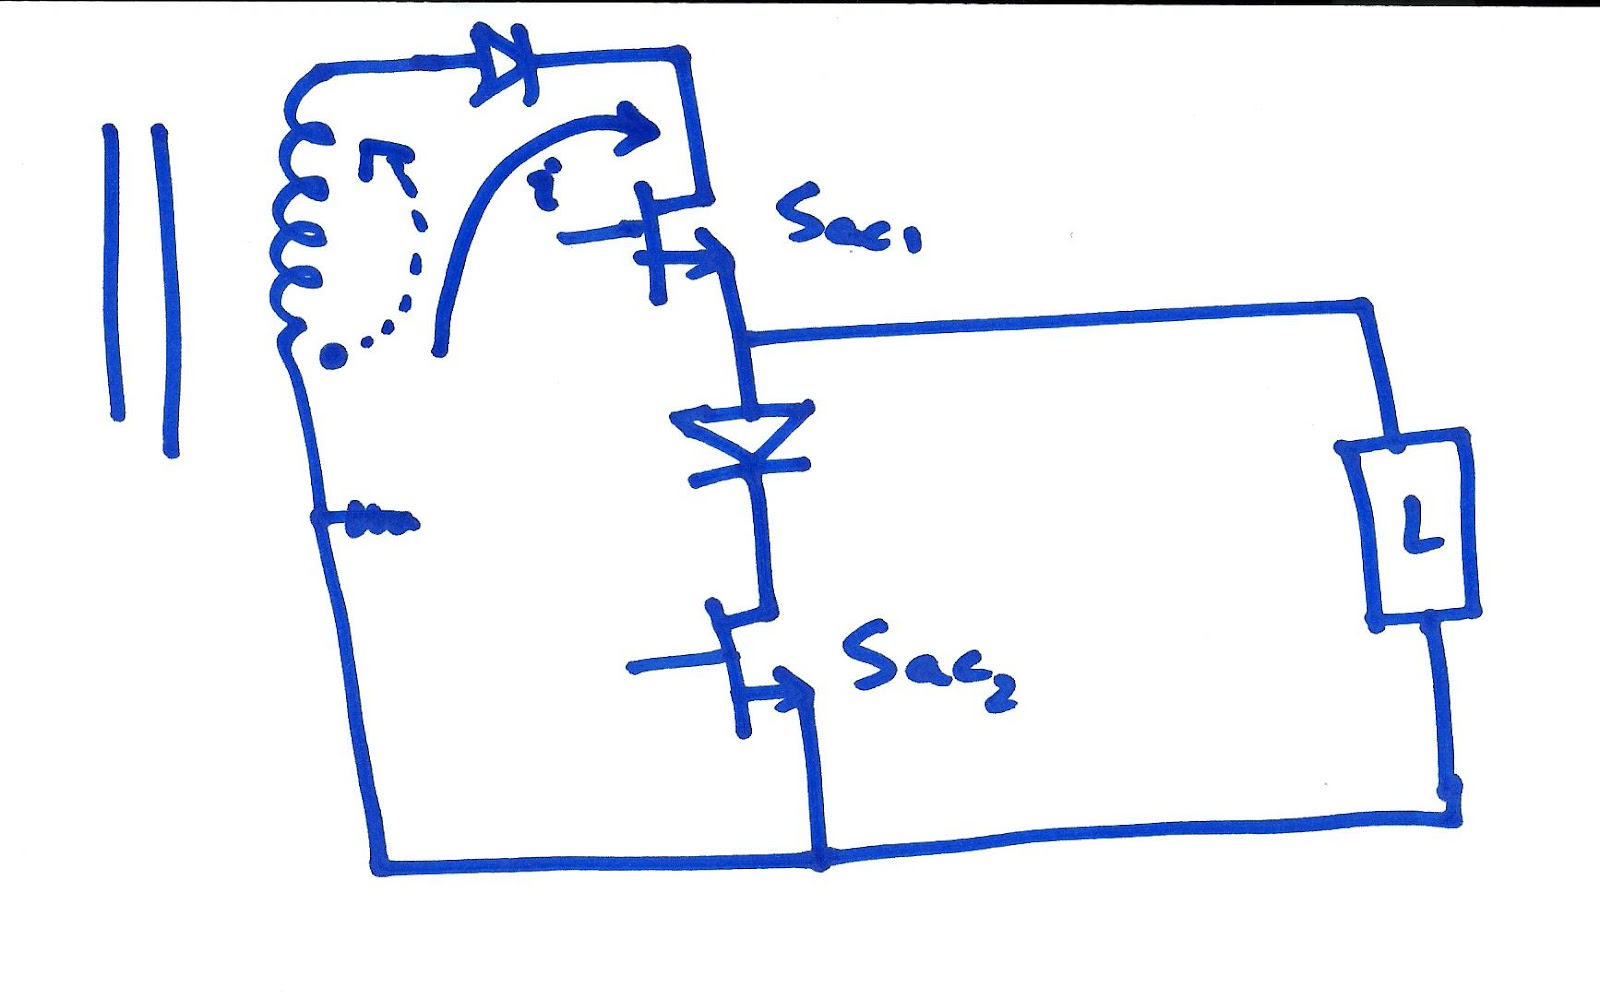 can we consider unfolding stage of flyback inverter as a half bridge rh pveducator blogspot com